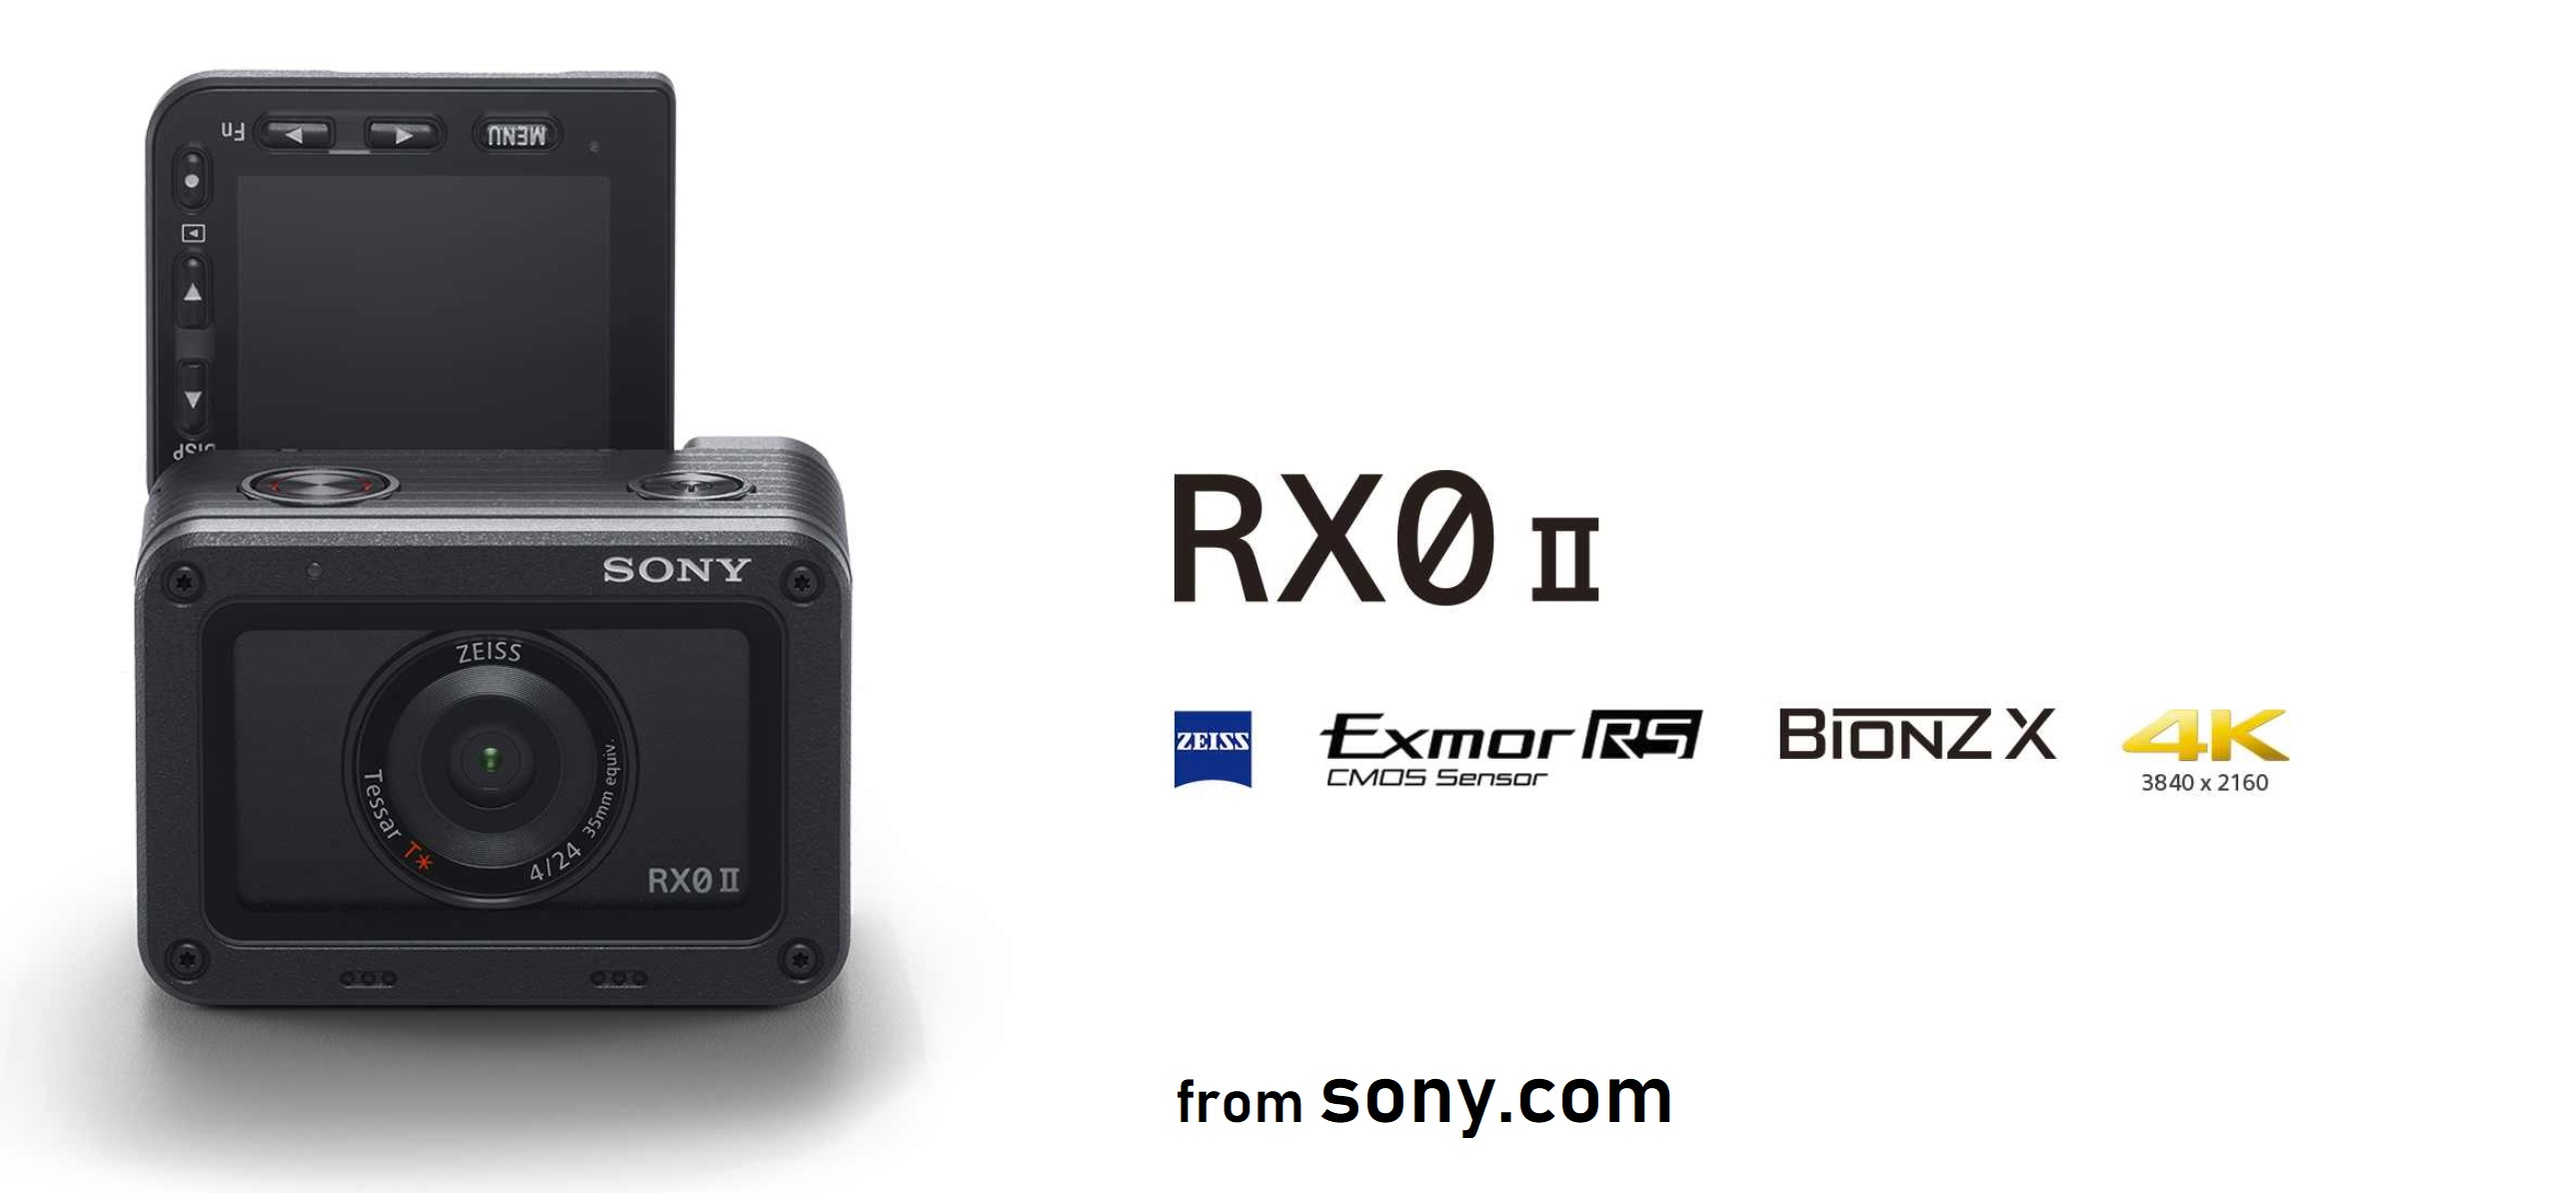 The vlogging flip screen on the RX0-ii from Sony.com